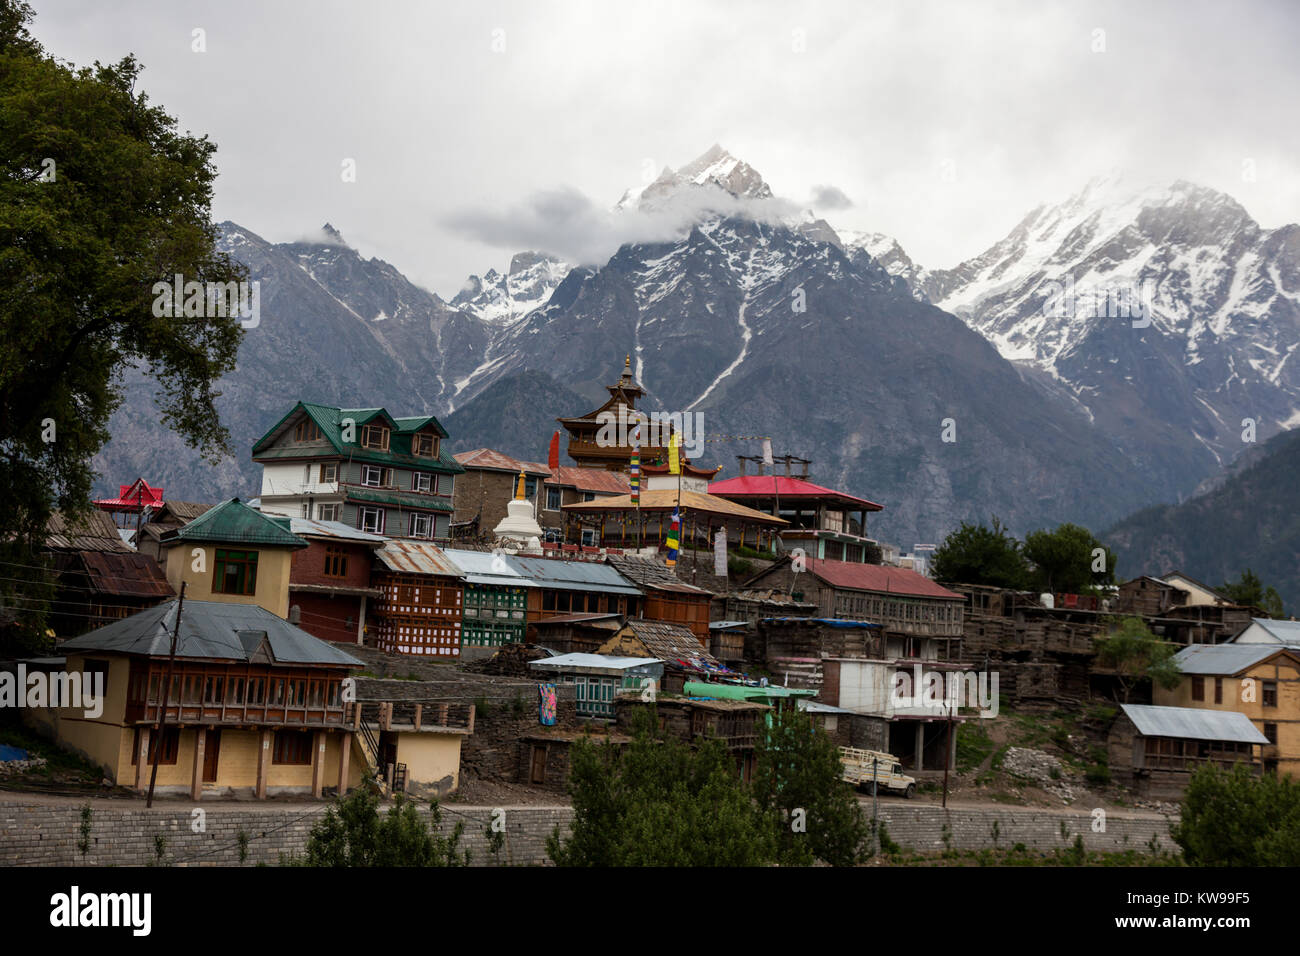 Landscapes from Kalpa village from the road trip of Spiti Valley, Himachal Pradesh, India. - Stock Image